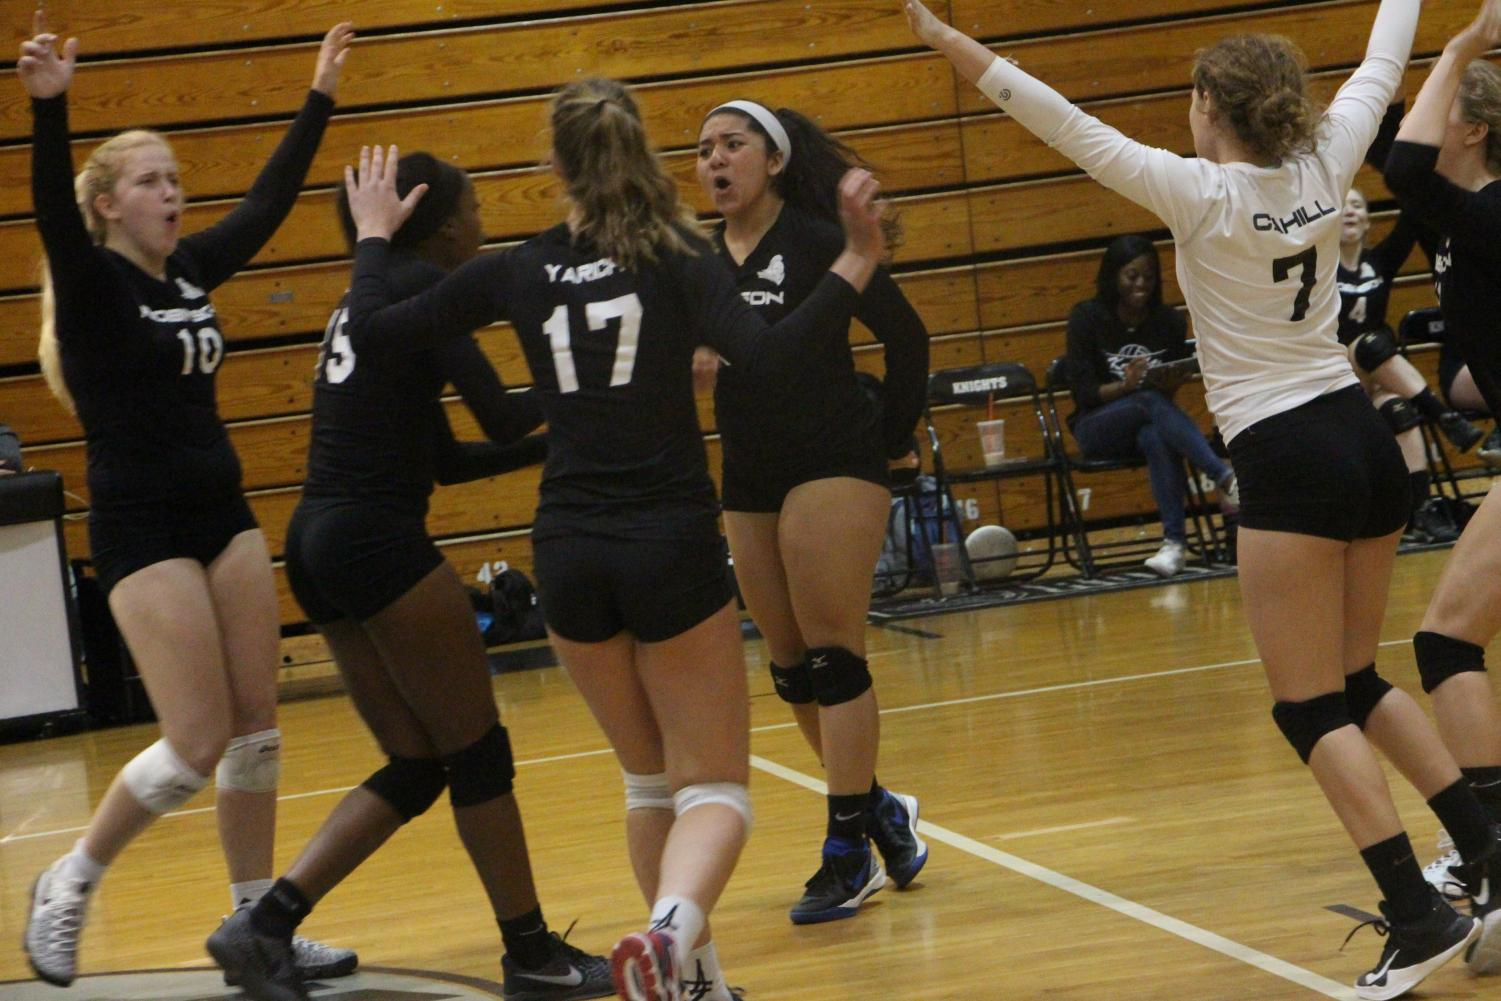 The Lady Knights celebrate as Lauren Johnson ('19) serves up an ace.